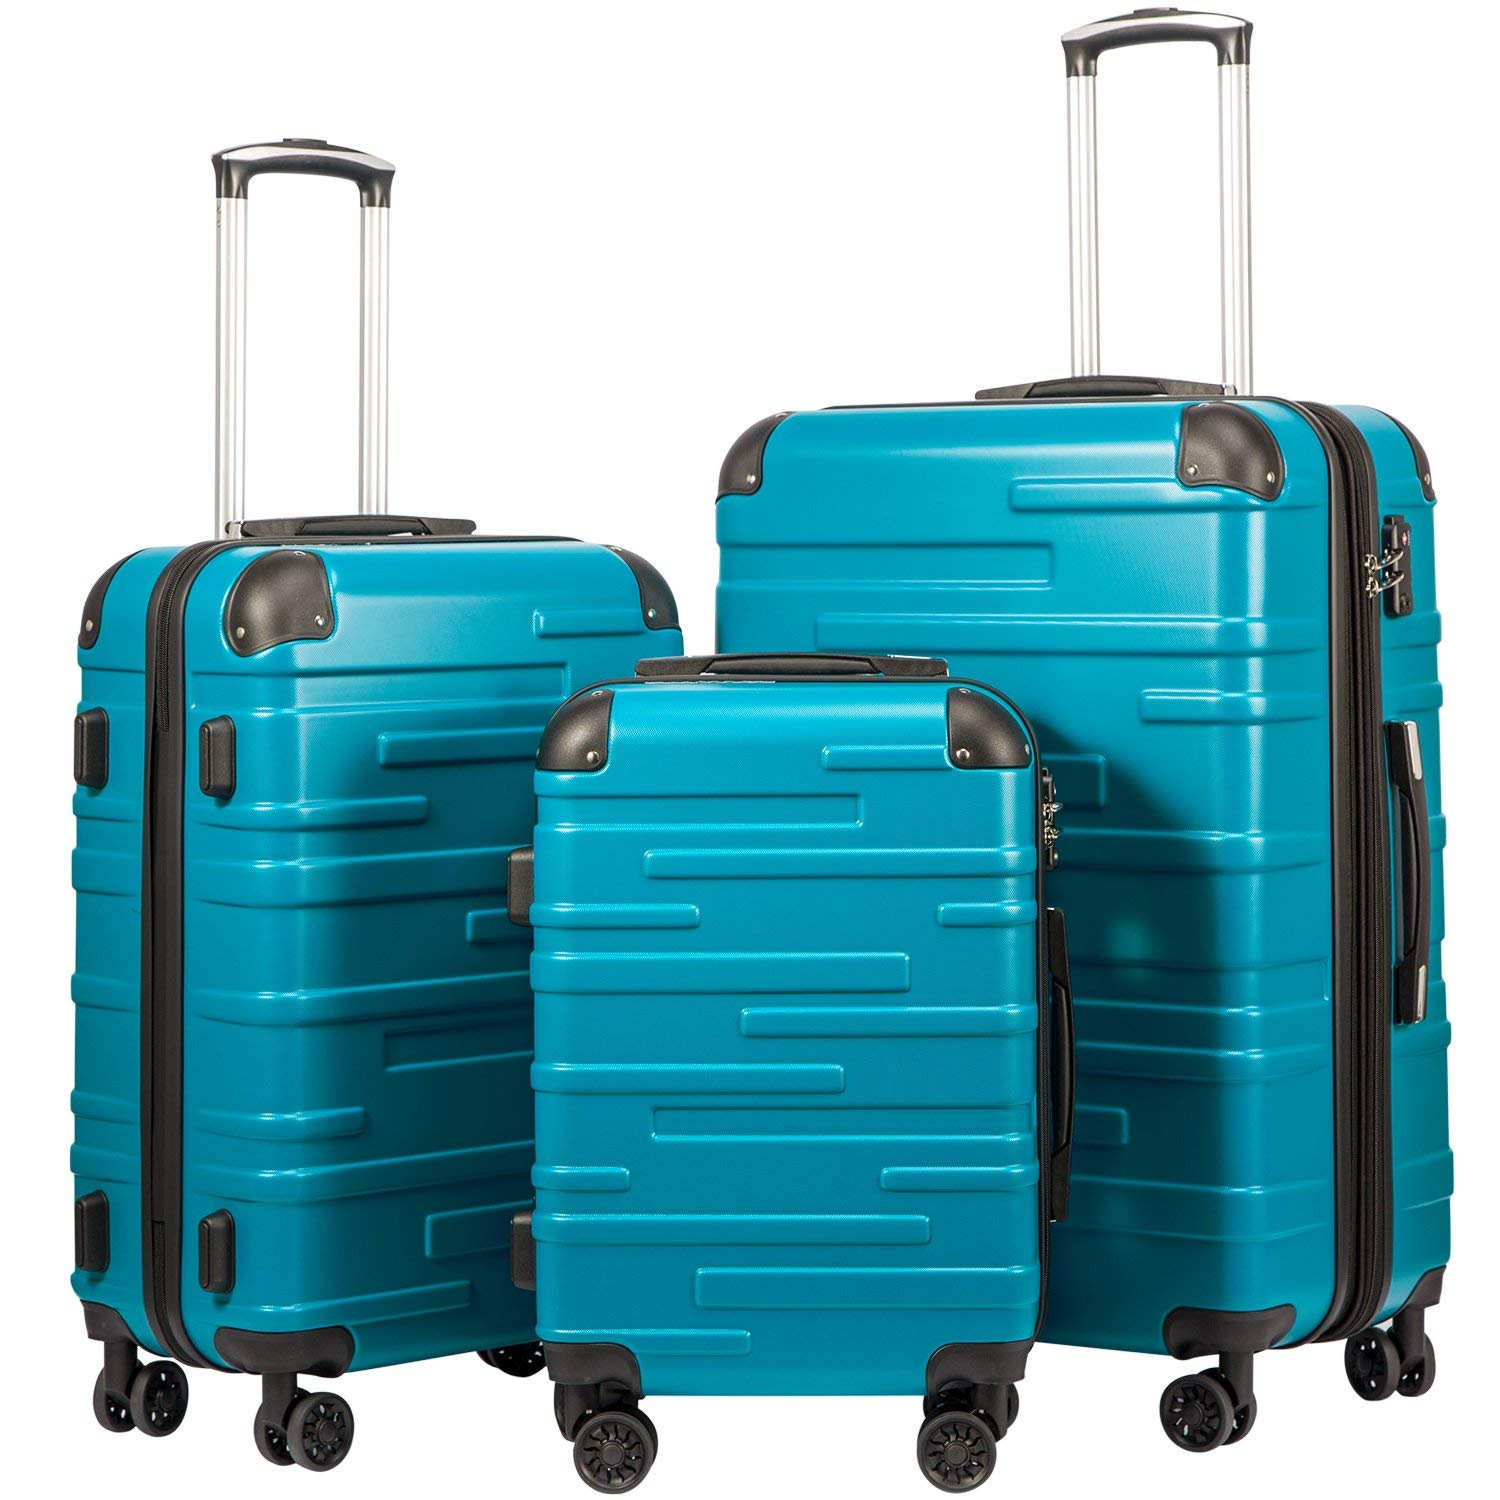 Coolife Luggage Expandable Suitcase 3 Piece Set with TSA Lock Spinner 20in24in28in lake blue